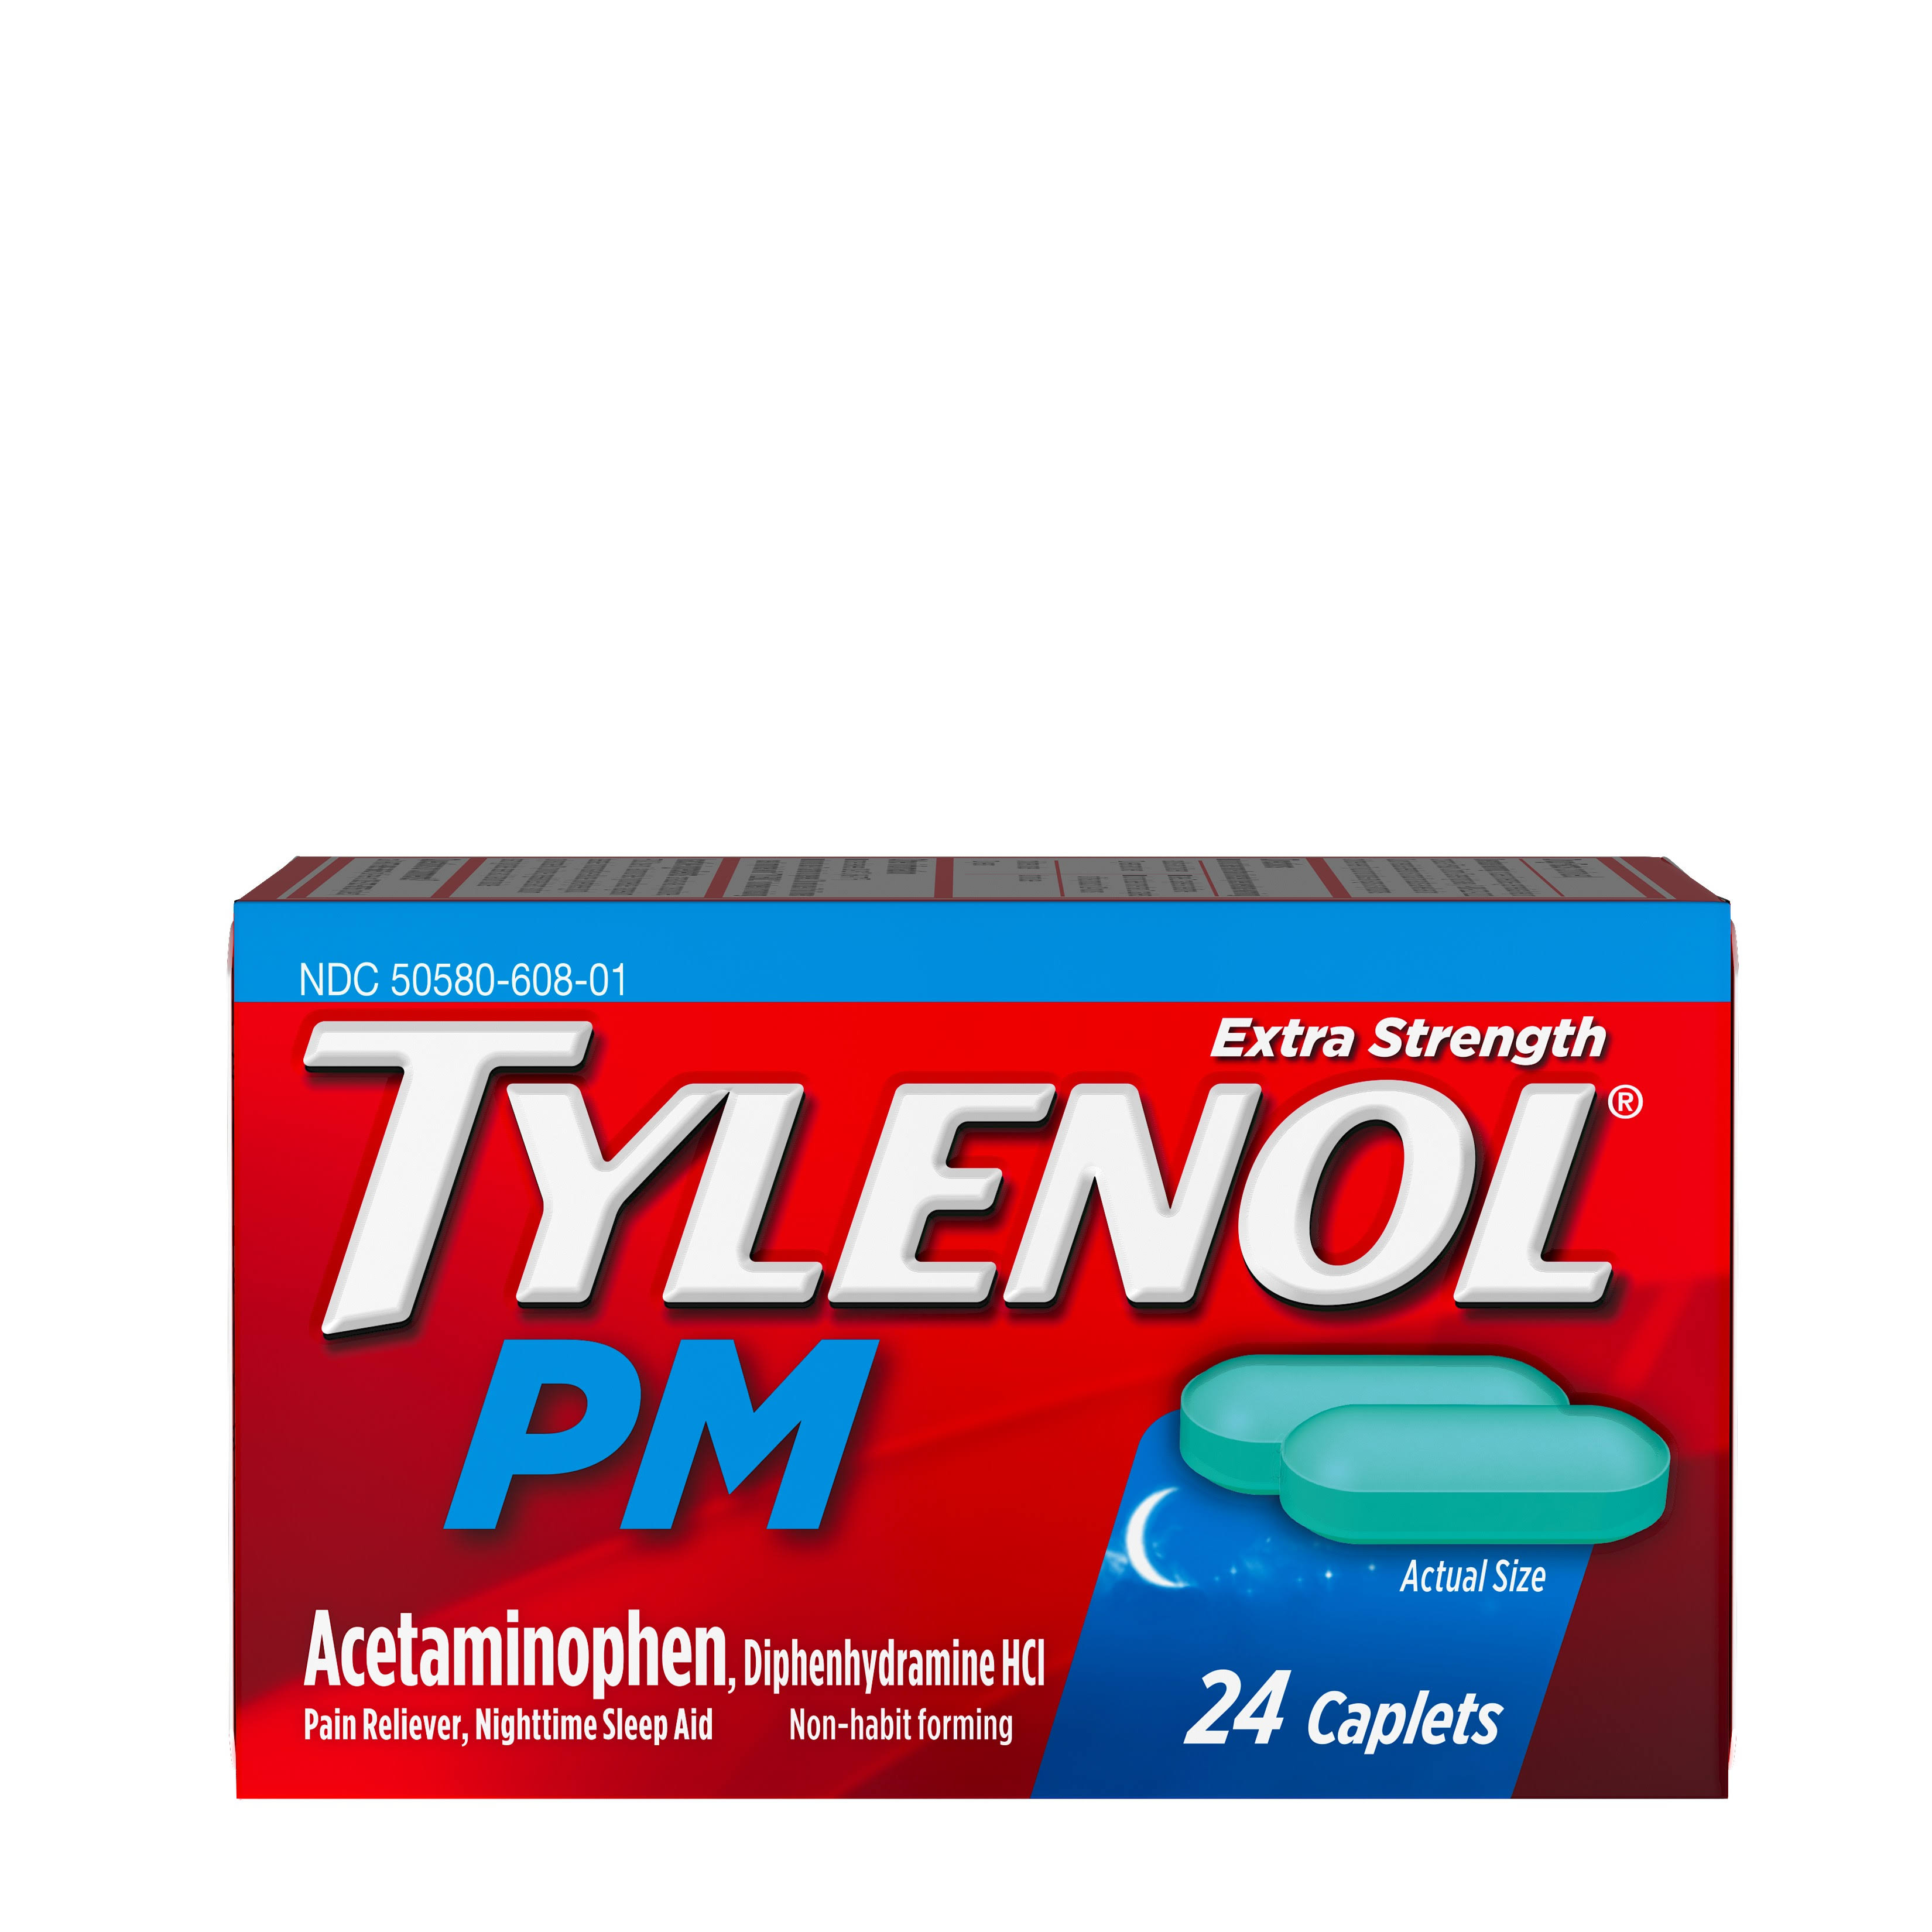 Tylenol PM Extra Strength Pain Reliever/Nighttime Sleep Aid - 24 Caplets